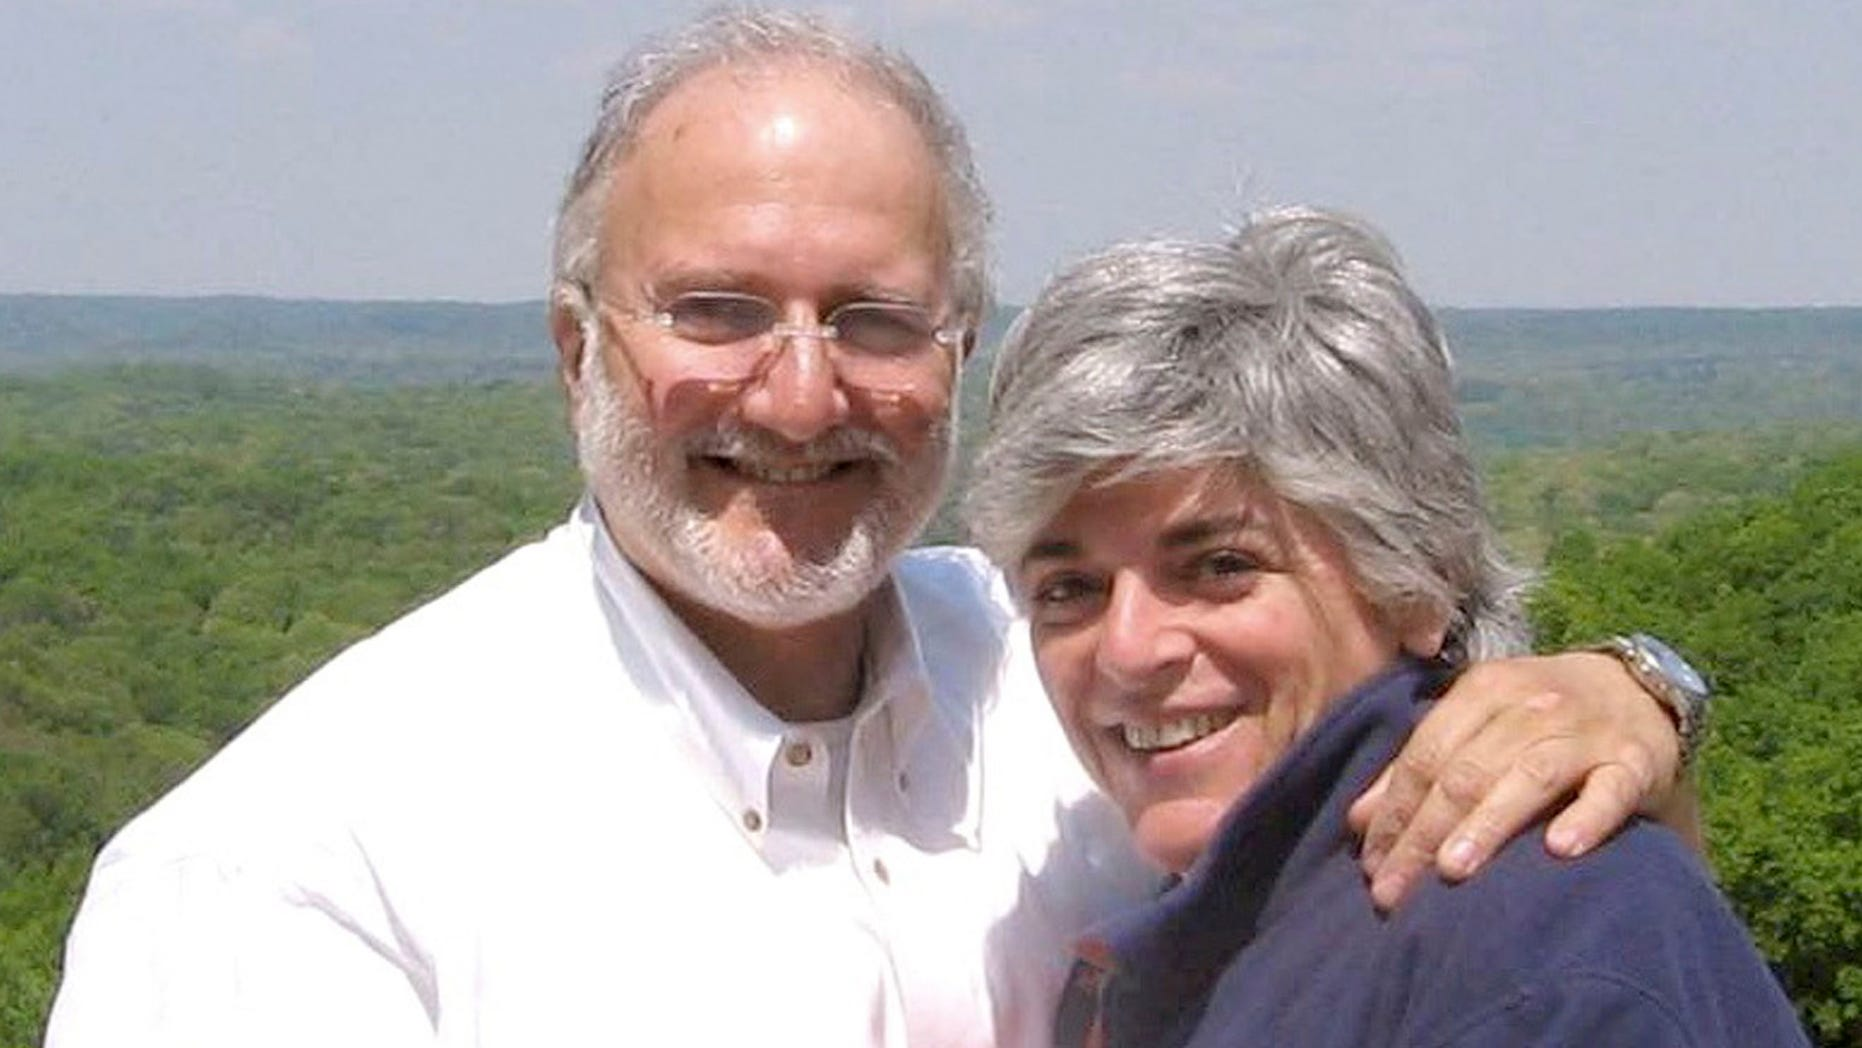 Alan and Judy Gross